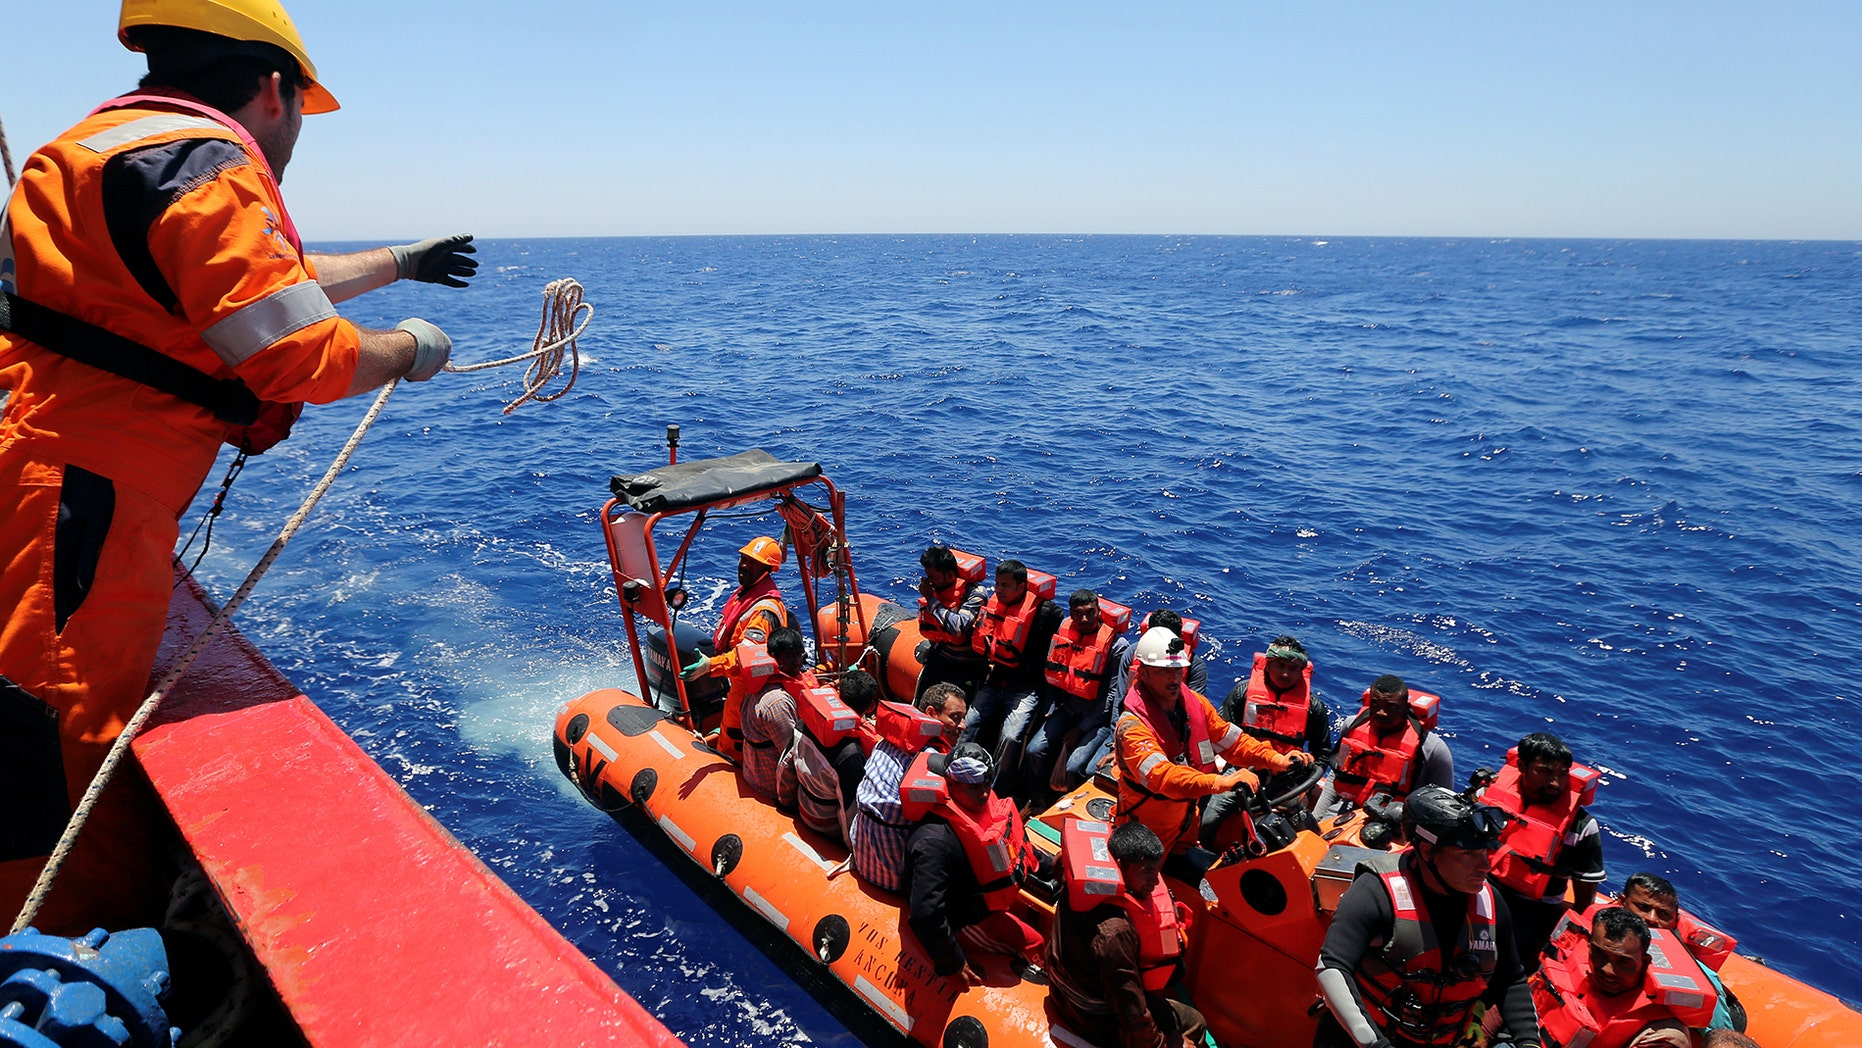 """Migrants are rescued by """"Save the Children"""" NGO crew from the ship Vos Hestia in the Mediterranean sea off Libya coast, June 15, 2017.  REUTERS/Stefano Rellandini - RTS1792D"""